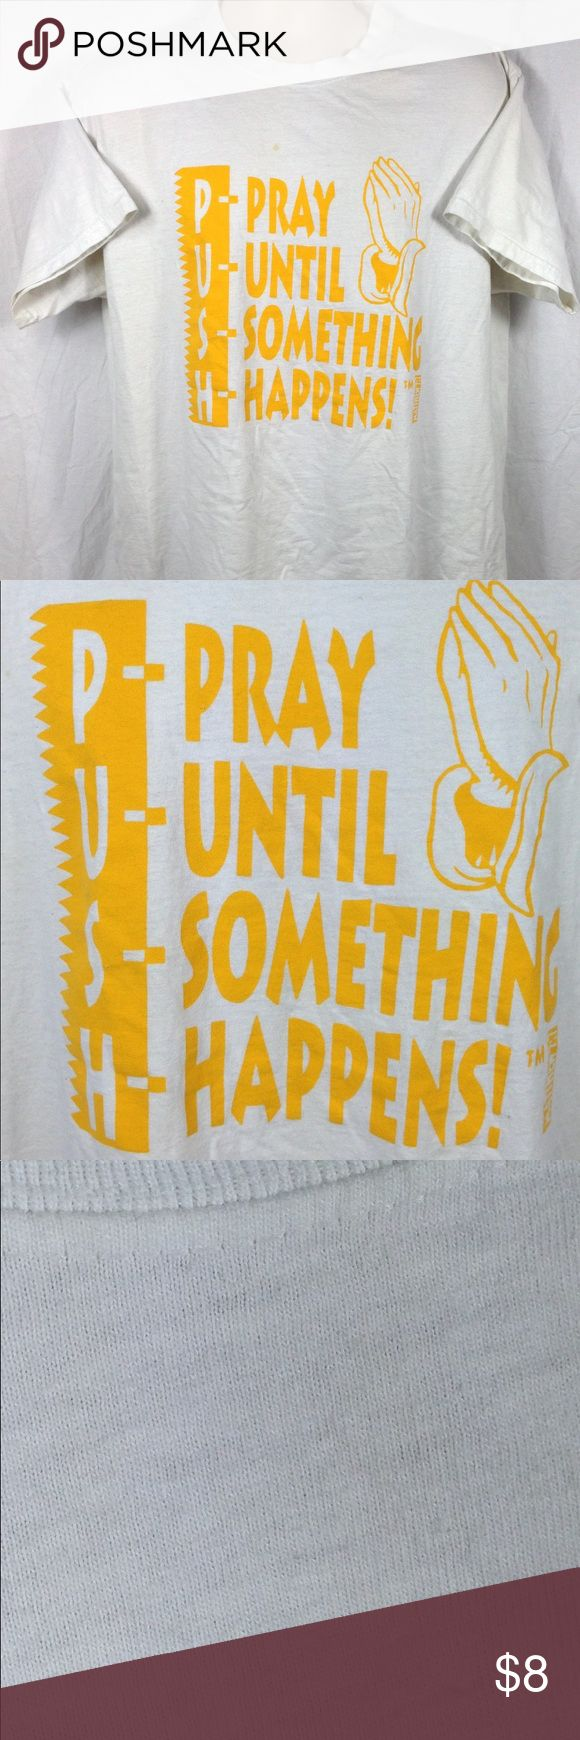 P.U.S.H 'Pray Until Something Happens Shirt SizeXL Very vintage design. Great meaning to the shirt. Shirt is in excellent condition. No rips. Very tiny stains that easily can be bleached out. See pictures for details. Any questions please feel free to contact me. Fruit of the Loom Shirts Tees - Short Sleeve